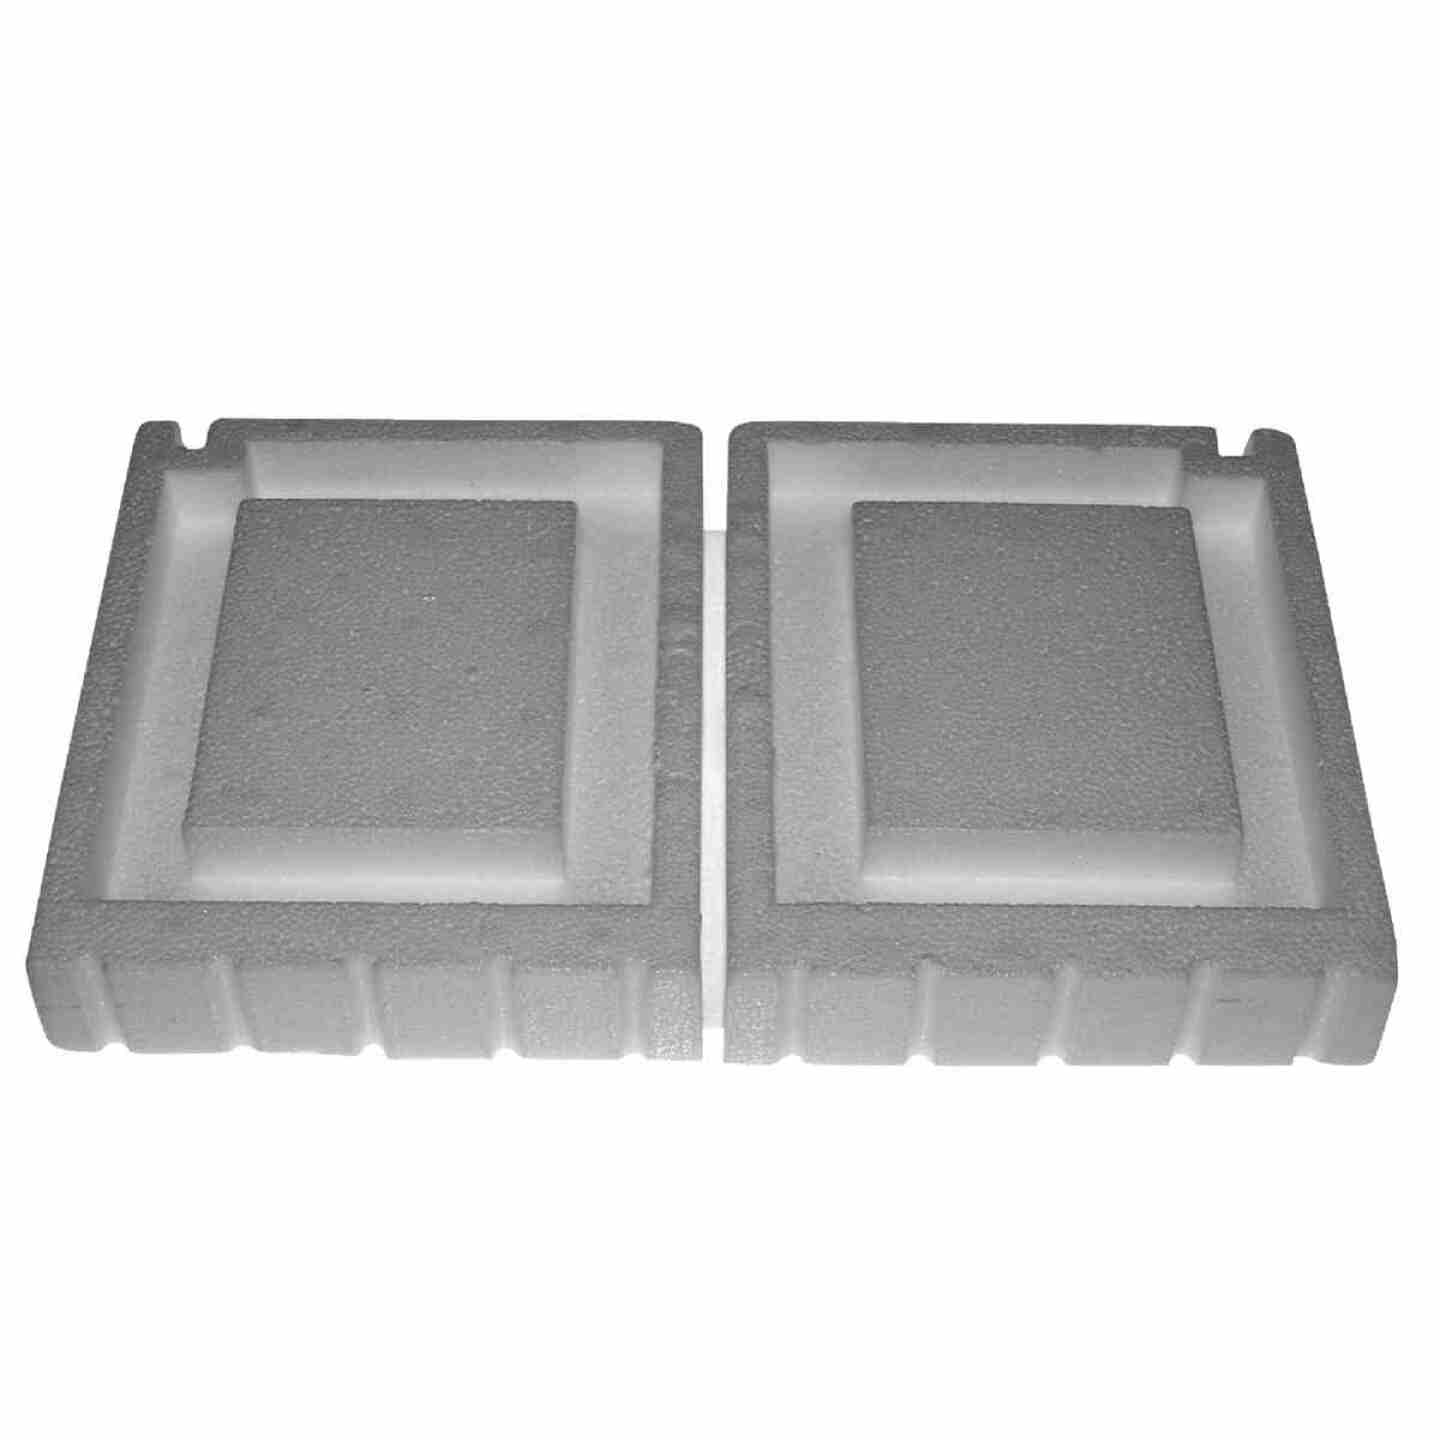 NorWesco 6-1/2 In. x 7-3/4 In. Automatic Vent Foam Plug (2 Count) Image 1